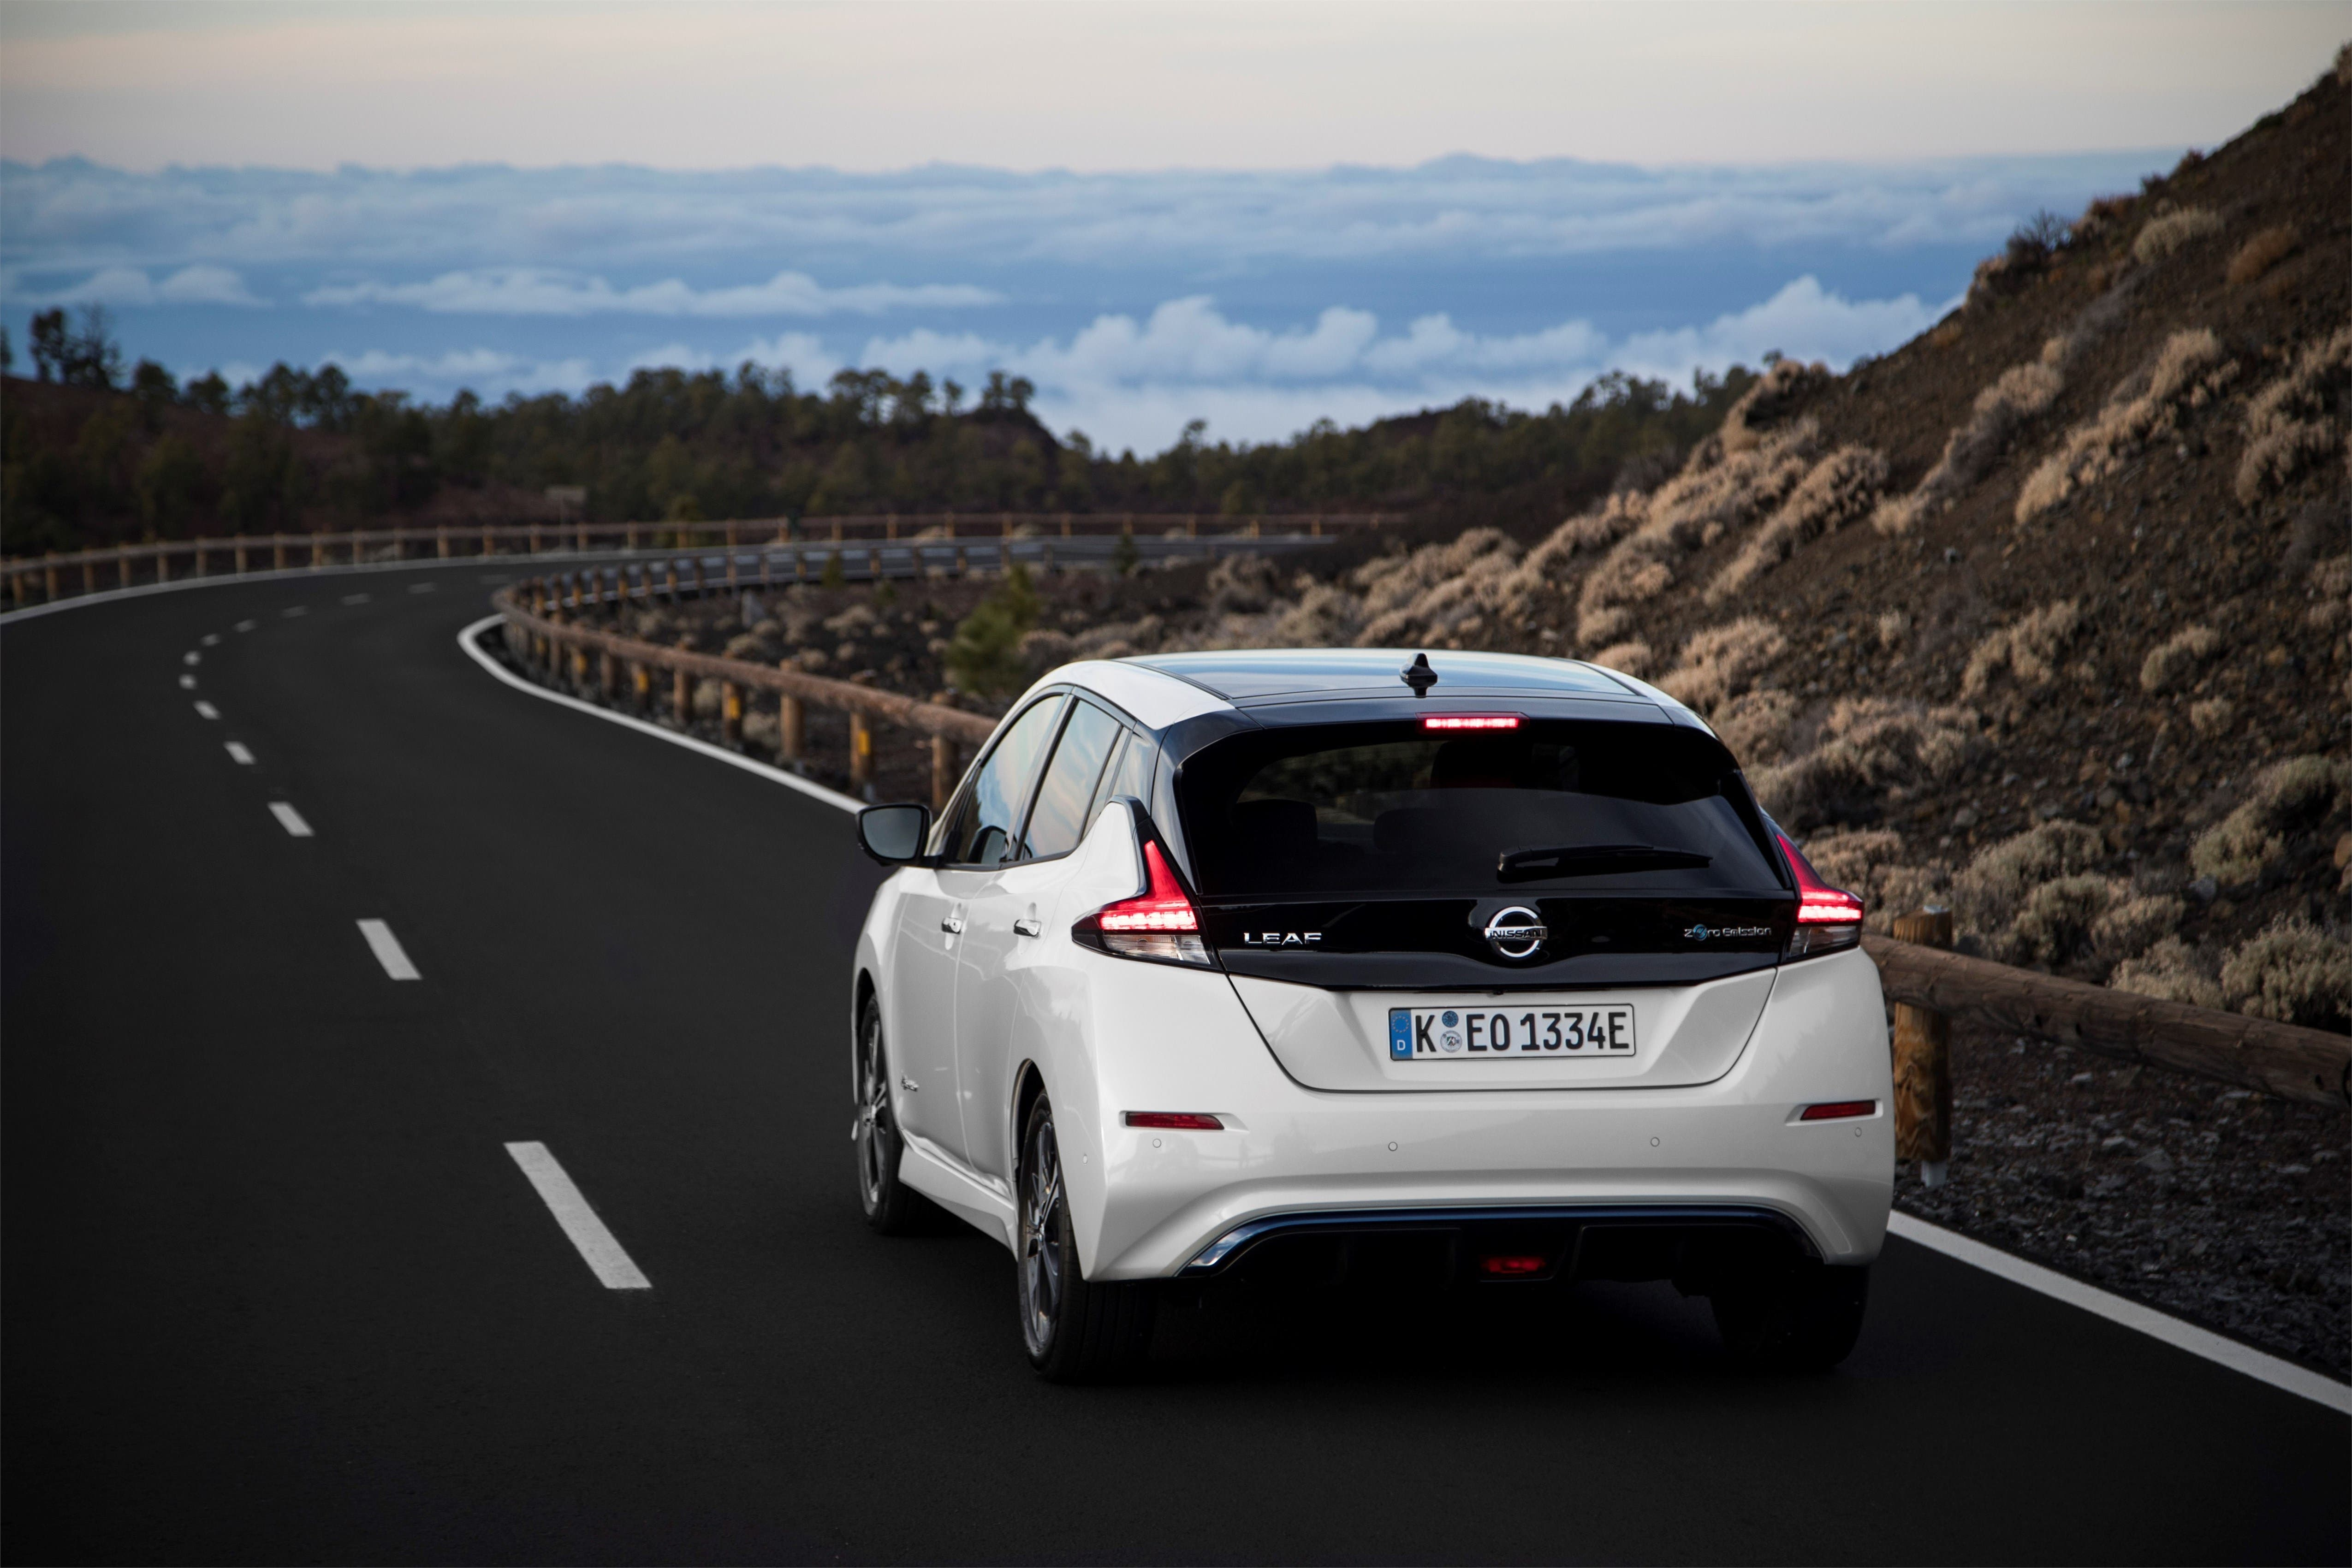 2018 Leaf vs Long Journeys — Can It Take The Heat